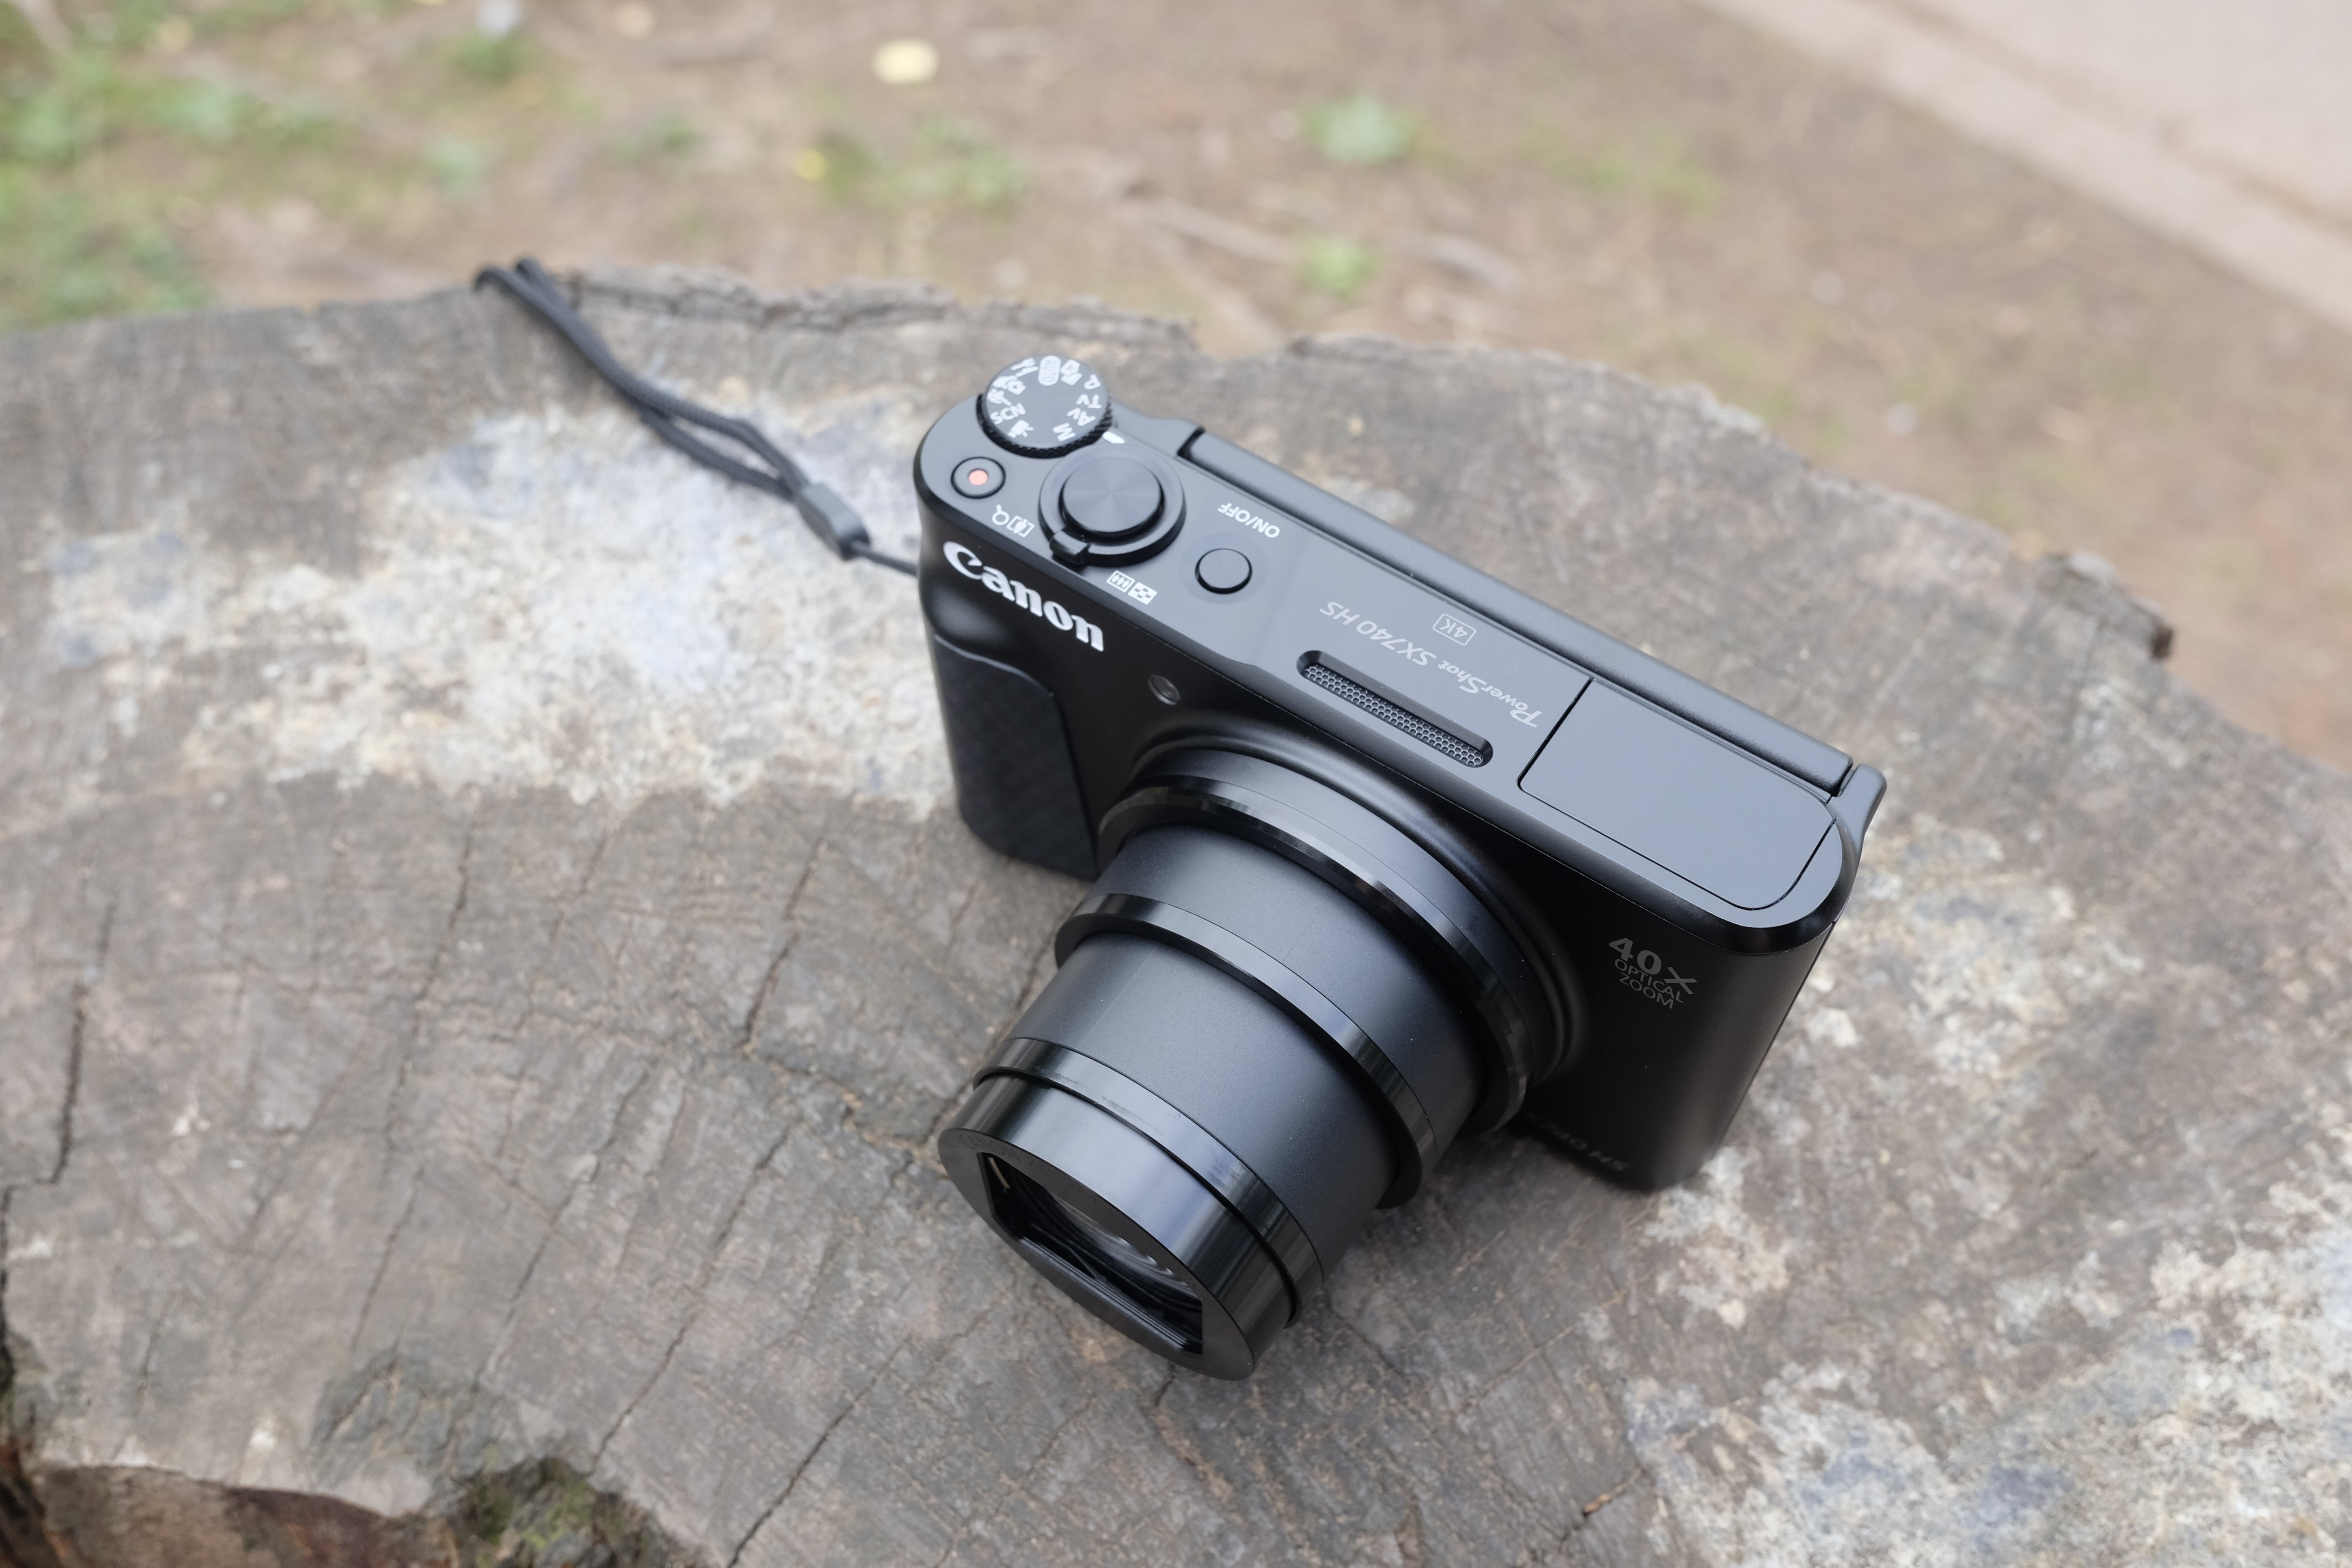 Canon Powershot Sx740 Hs Review Trusted Reviews 740